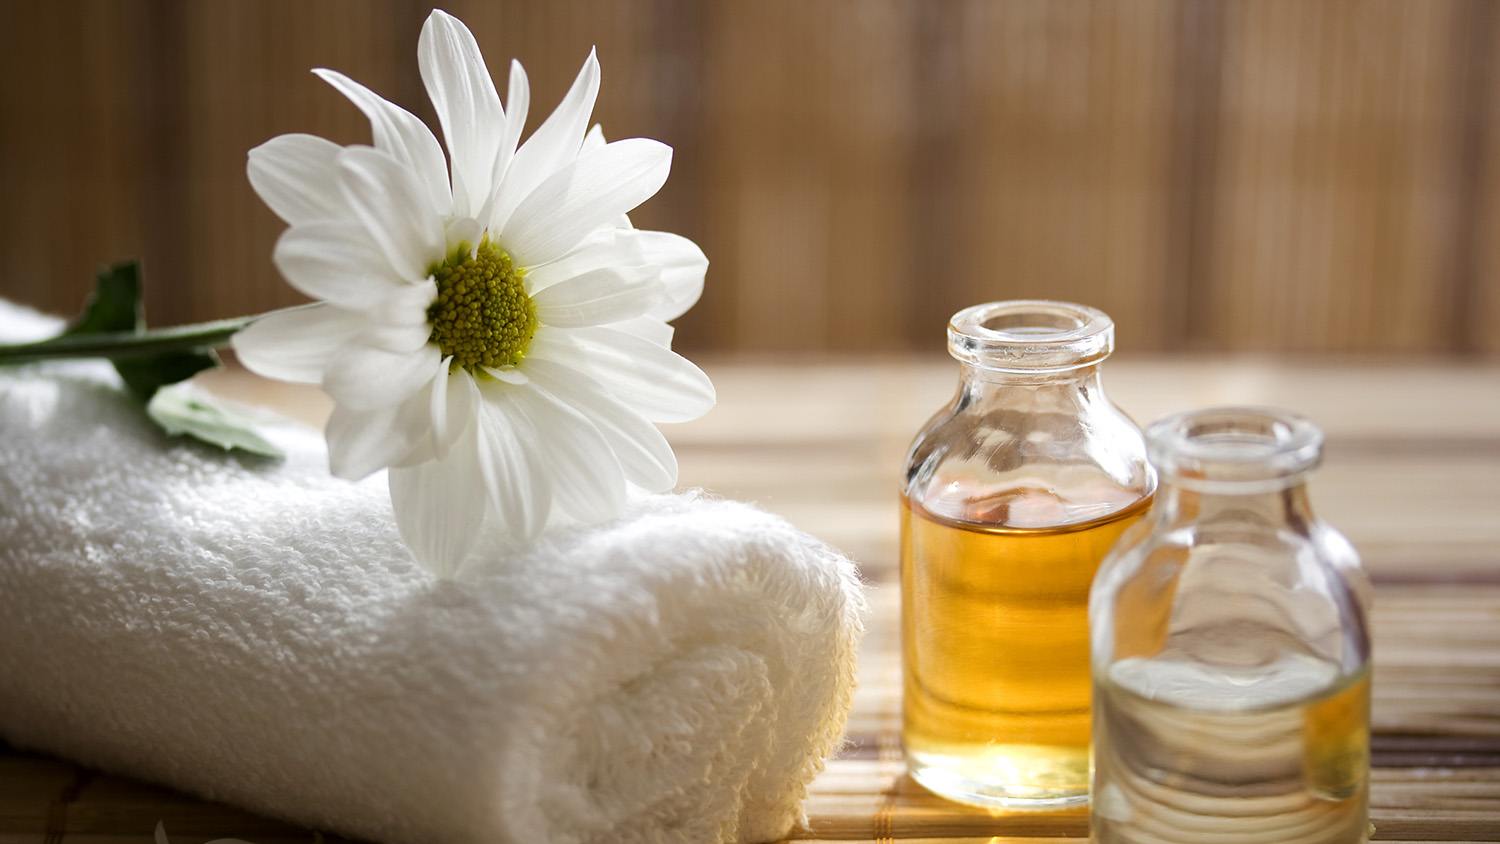 6 Anti-Aging Oils That Will Help Regrow Hair, Smooth Skin, Strengthen Nails, and More